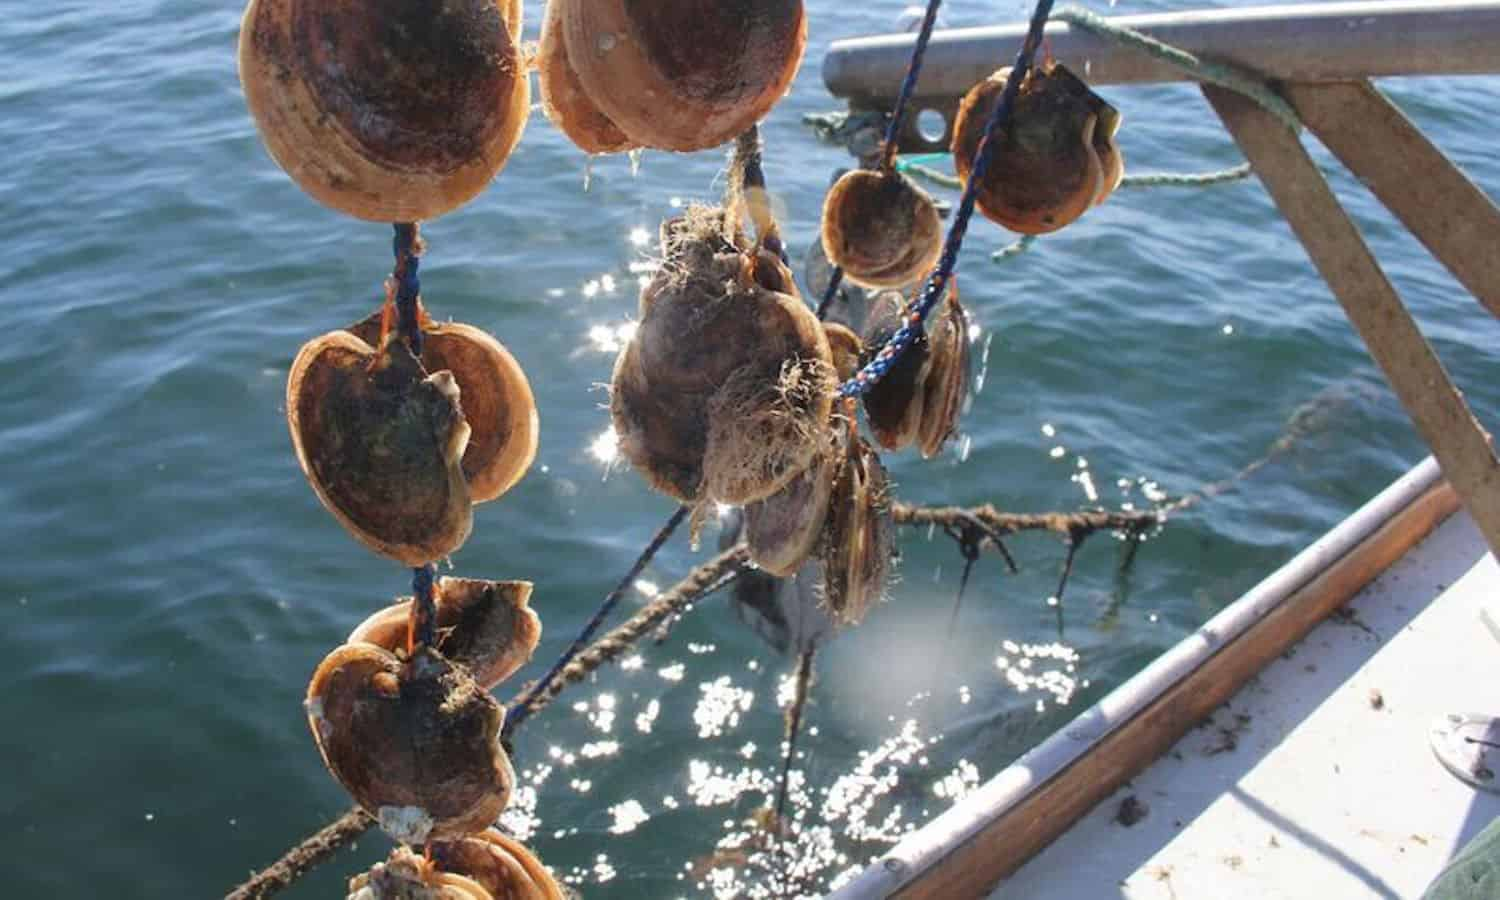 Maine's Coastal Enterprises Inc. invests in specialized machinery from Japan to develop scallop farming and keep up with demand.